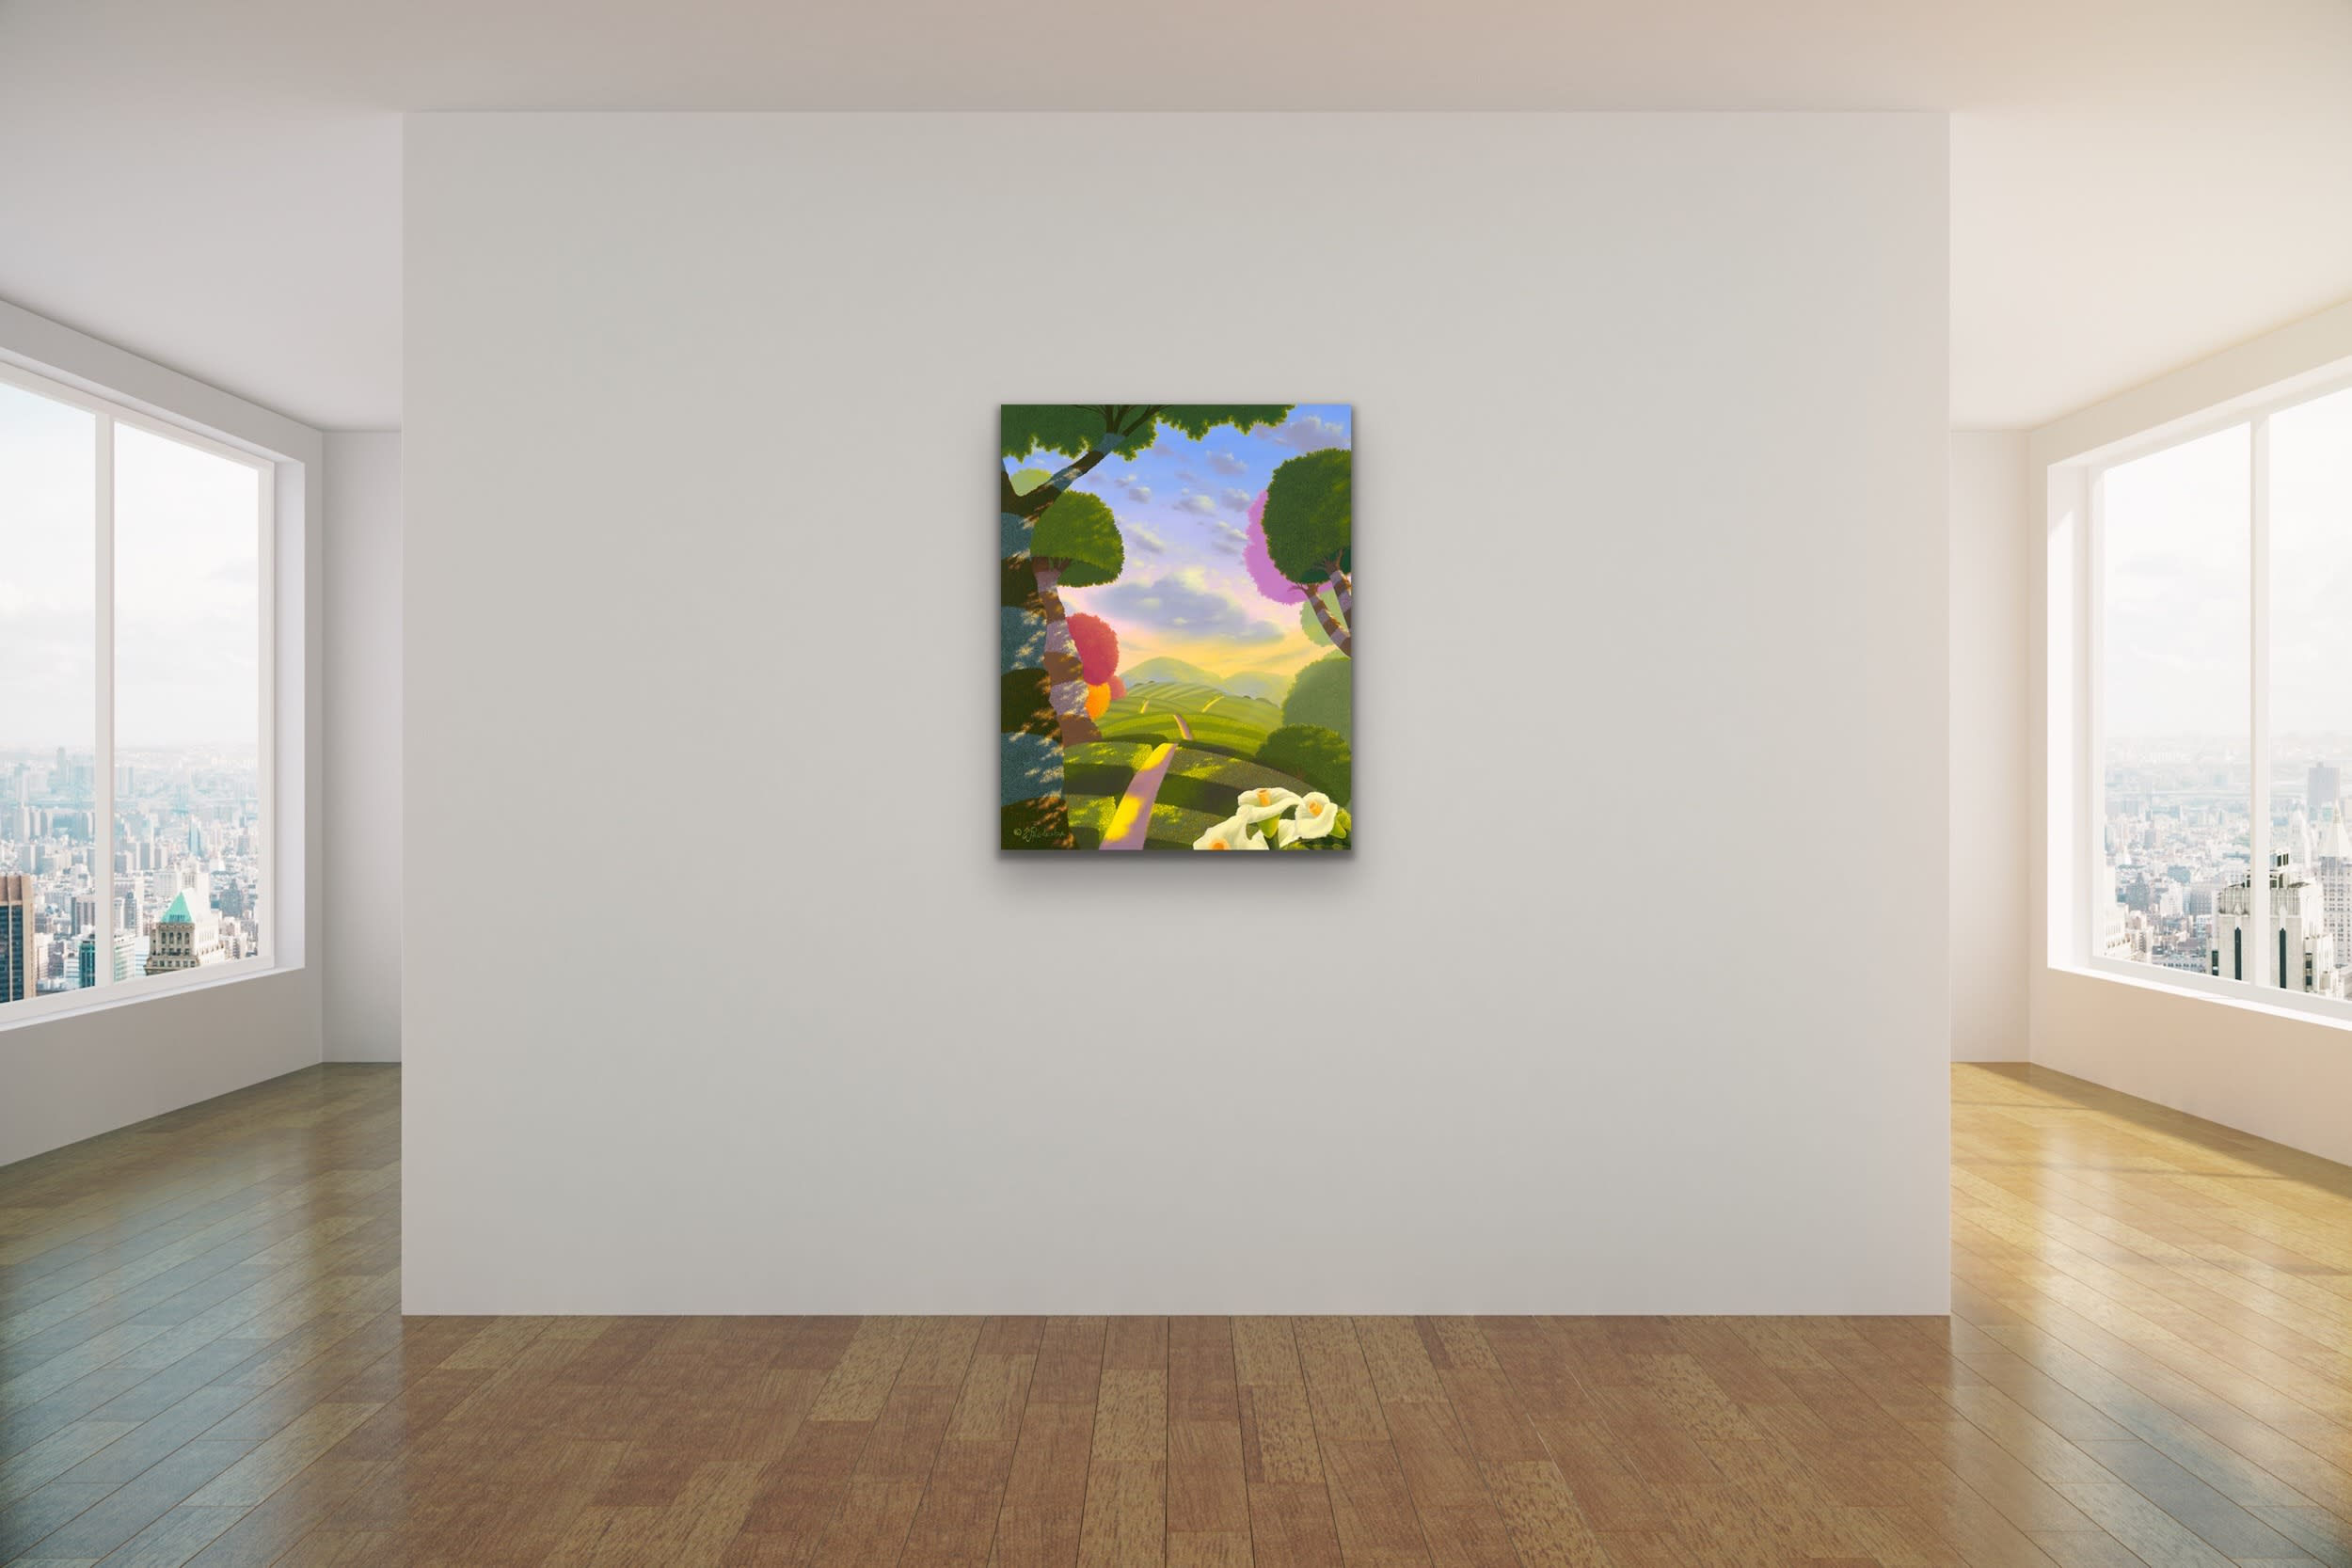 <div class='title'>           Michael Provenza   Evo Art Maui Mock Ups Pointilism Dots Tiny Detail Surreal Dreamscapes Disney Popular Lahaina Front Street Hawaii 1         </div>